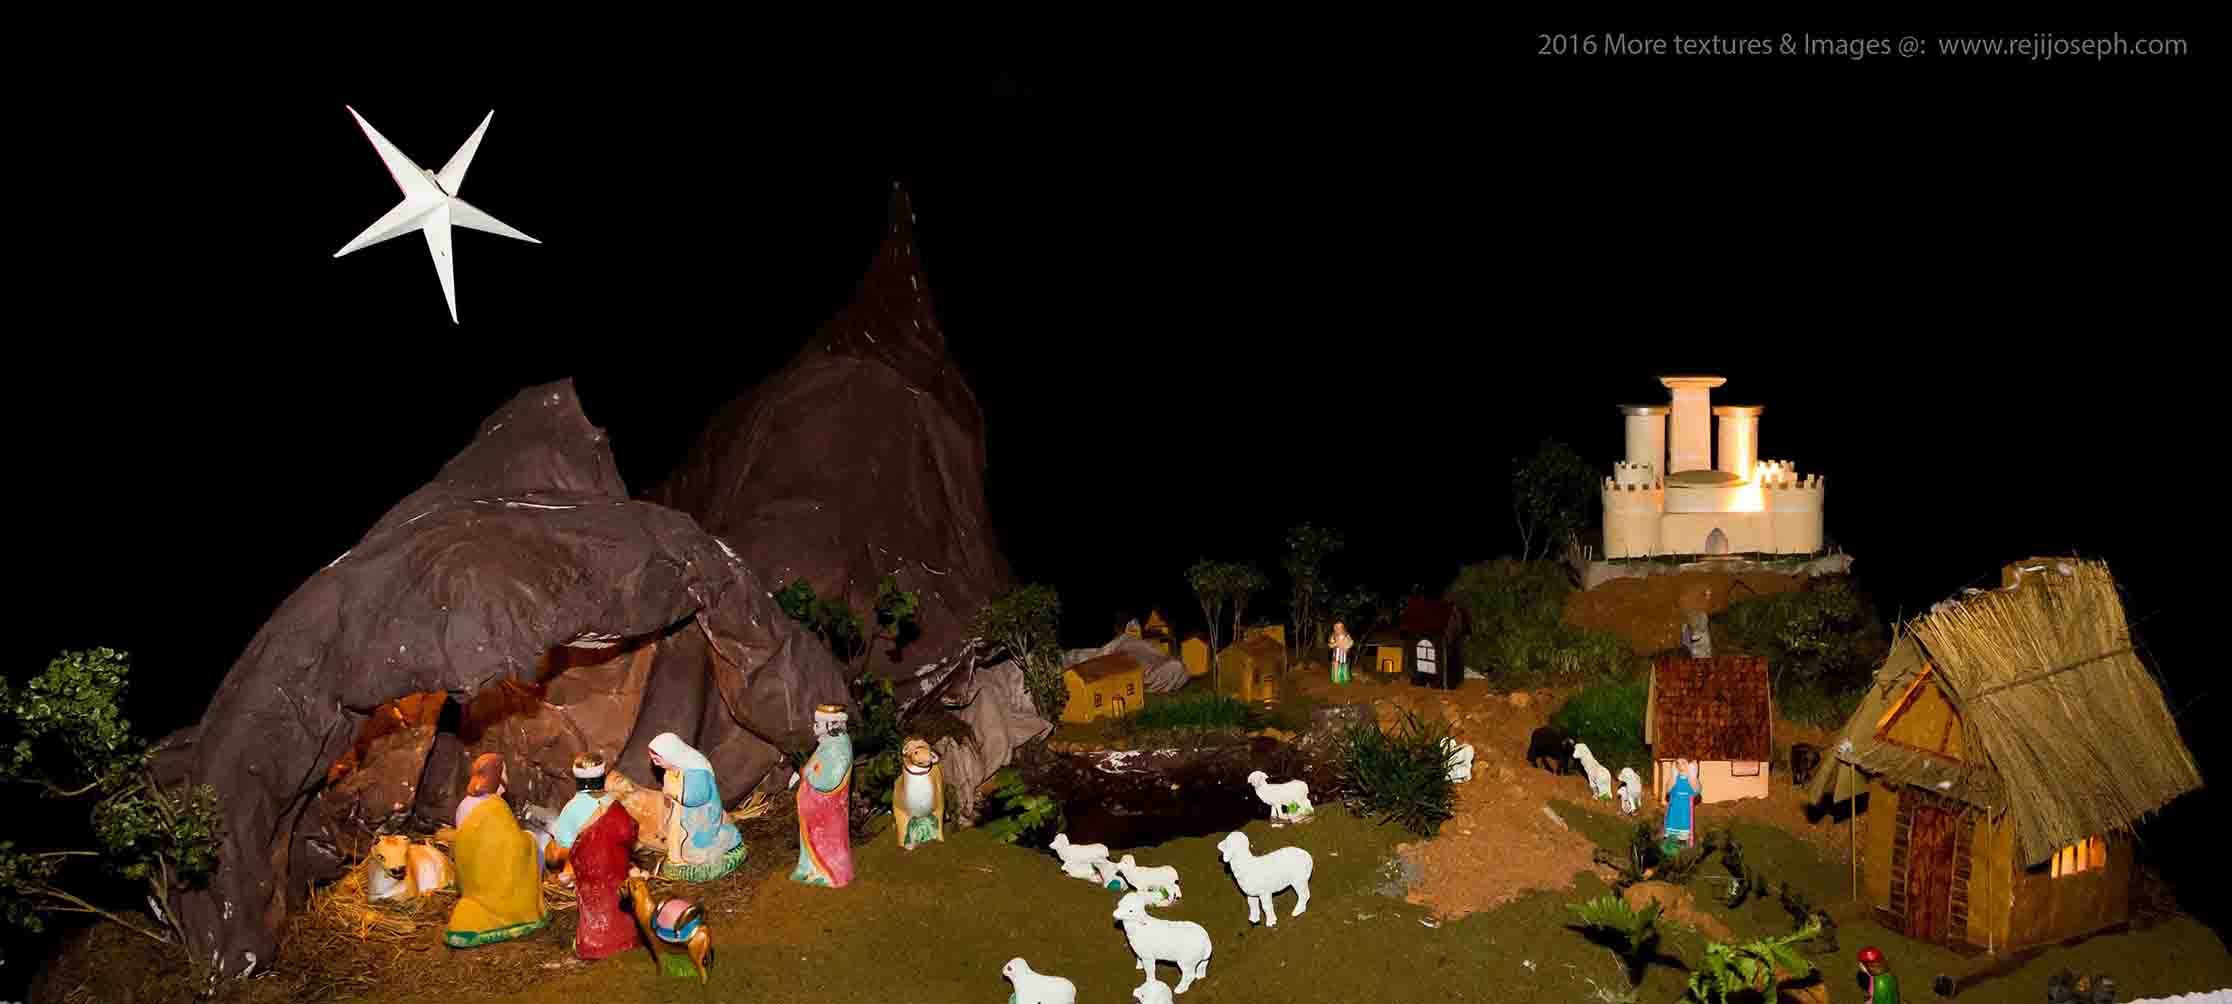 Christmas crib Pulkoodu Little flower church elamkulam 00001